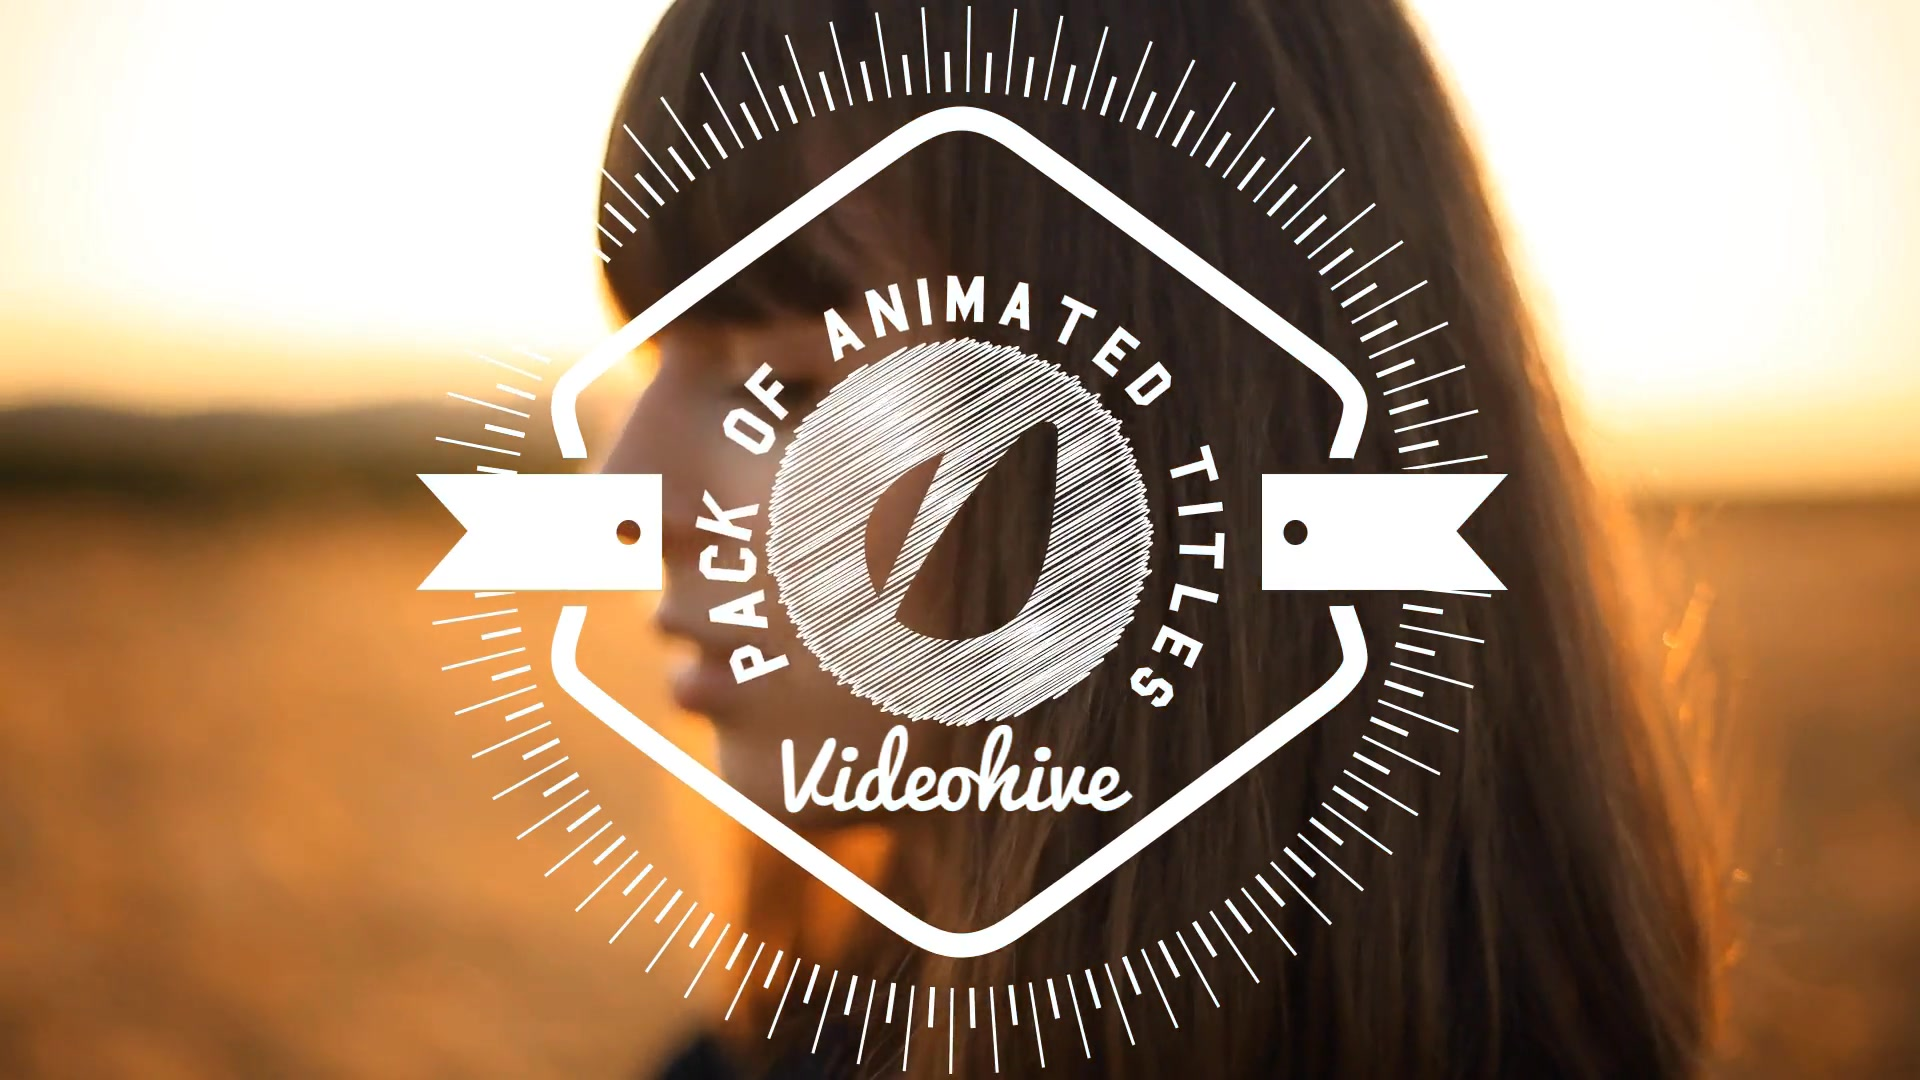 New Titles Collection - Download Videohive 6048398